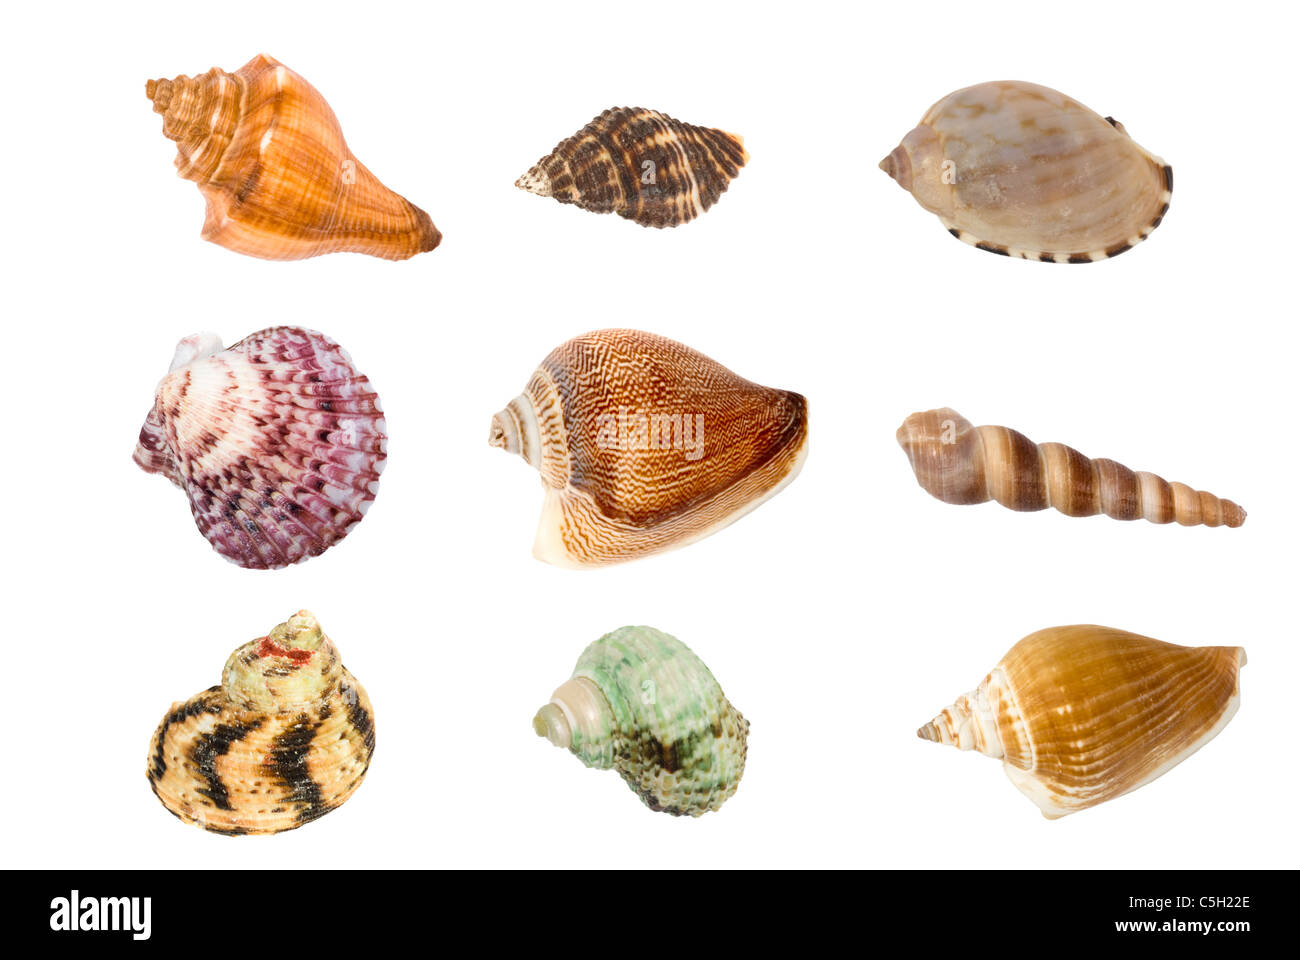 A montage of colorful seashells each with its own clipping path for use on white backgrounds. - Stock Image